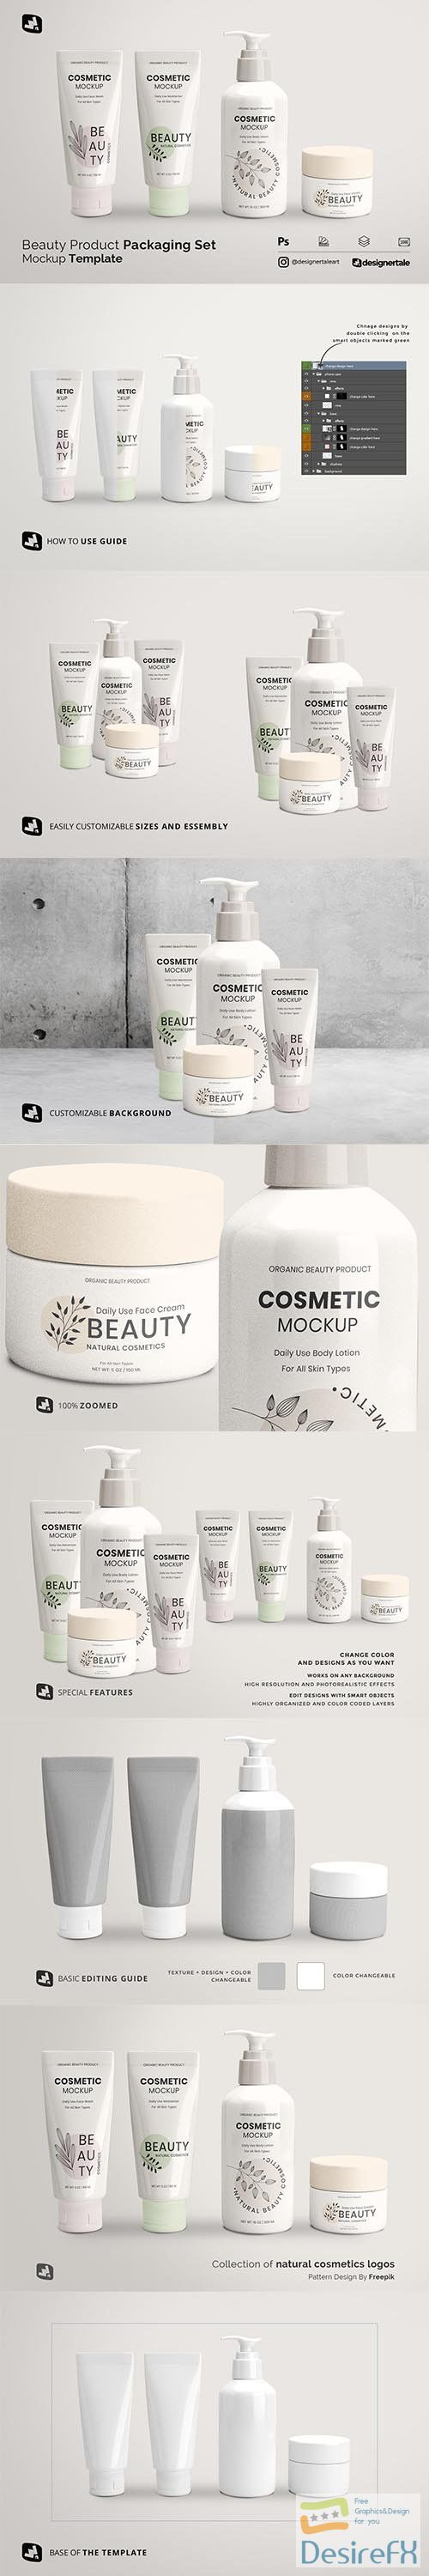 CreativeMarket - Beauty Product Packaging Set Mockup 5251048